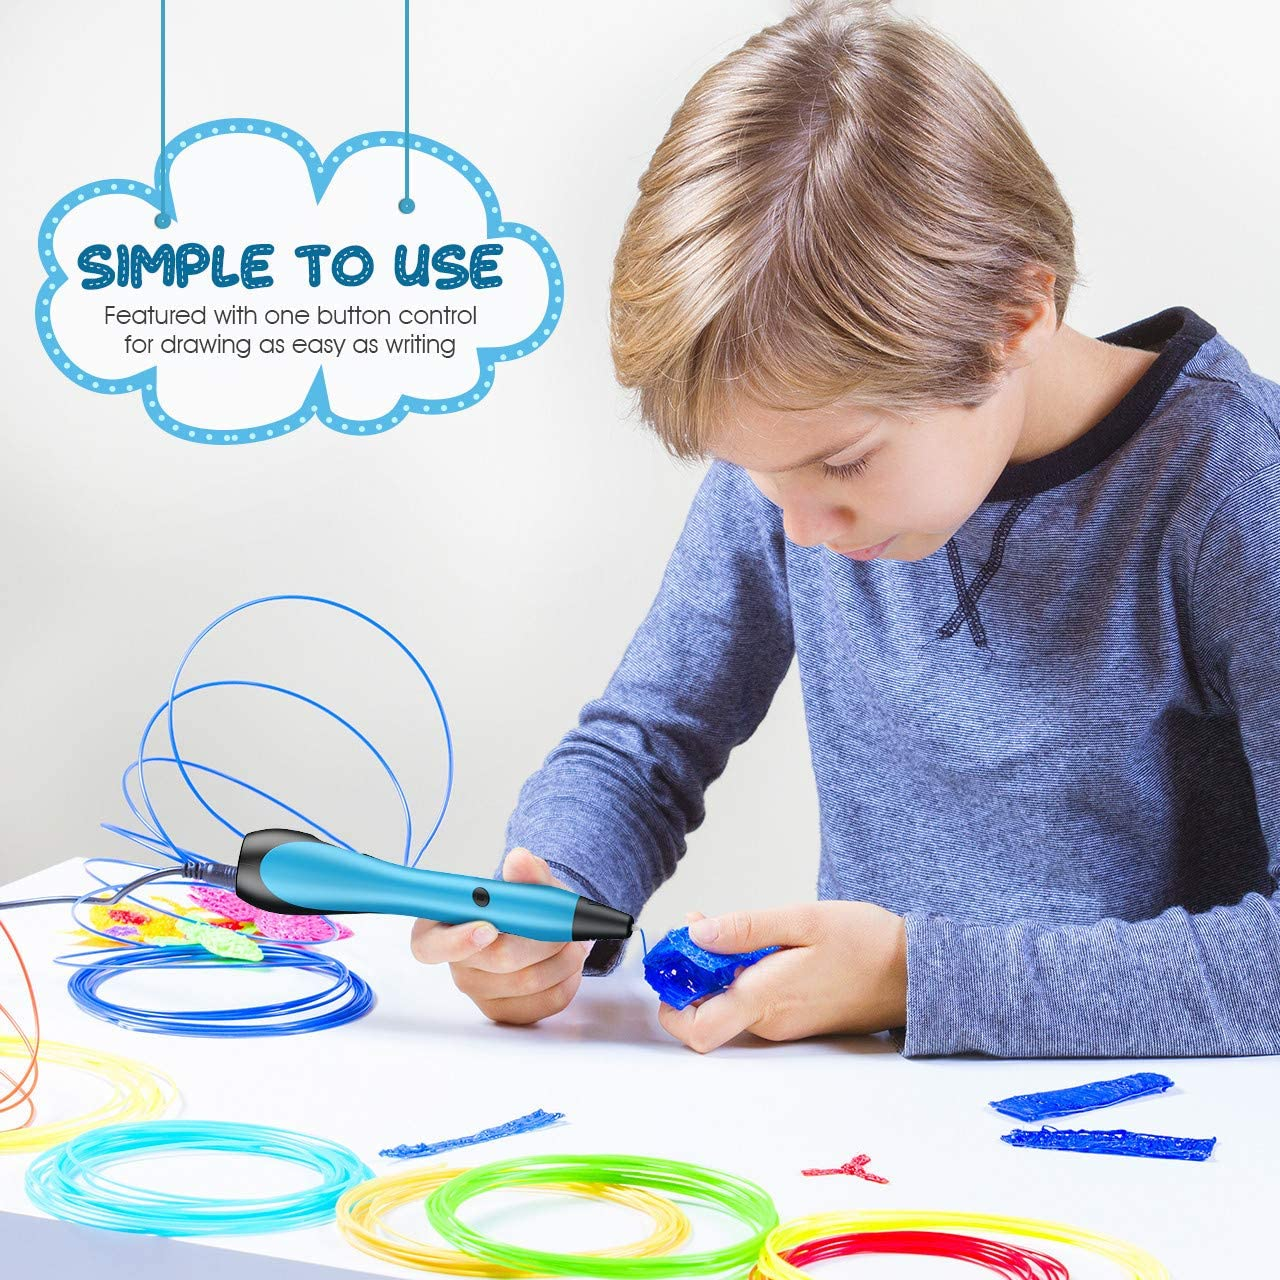 KITY 3D Drawing Printing Printer Pen for Kids Best Gifts